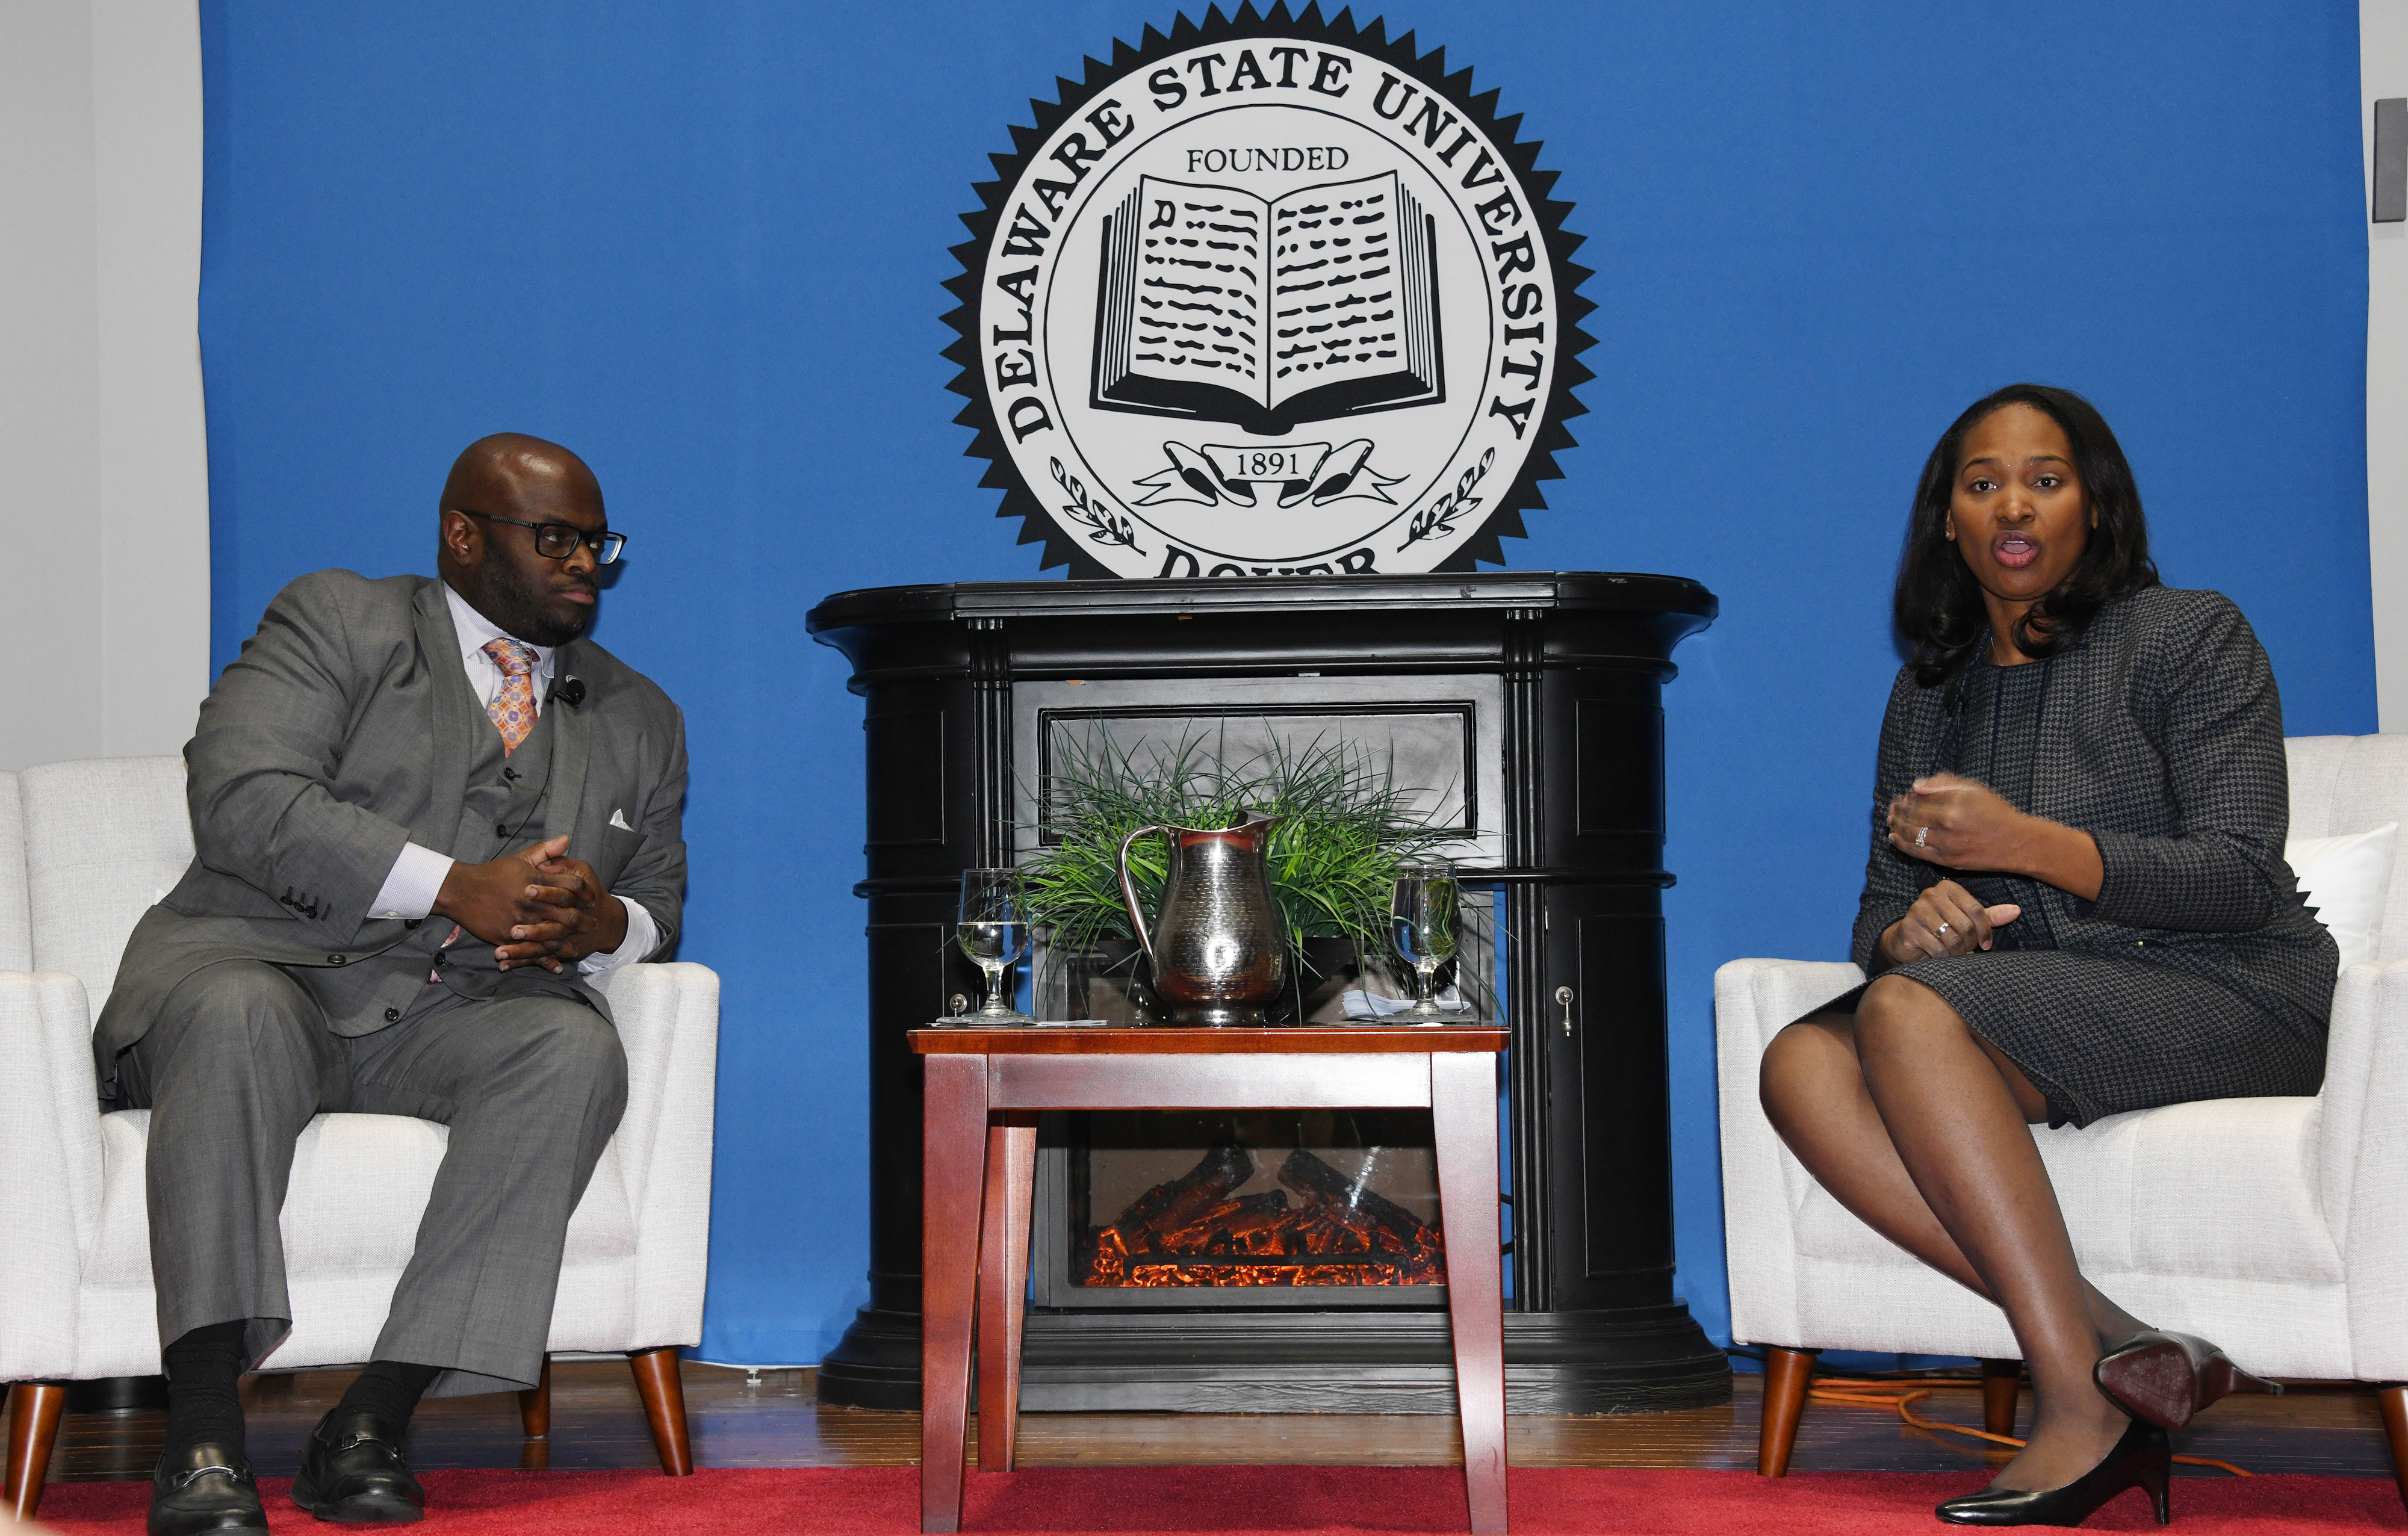 Fireside Chat with Justice Montgomery-Reeves